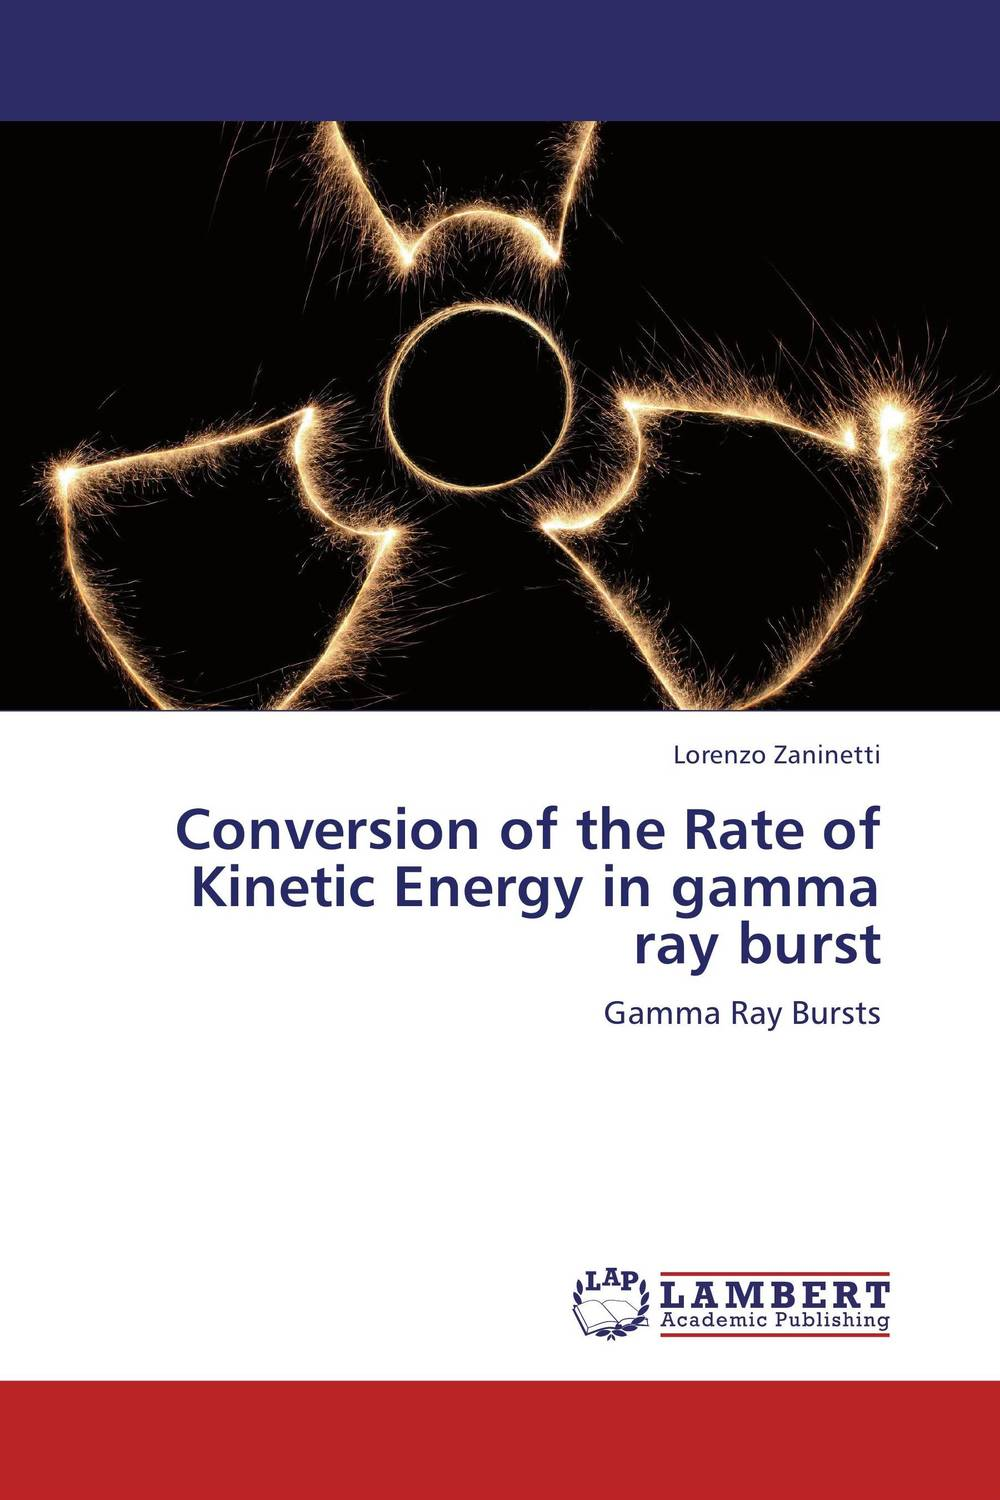 Conversion of the Rate of Kinetic Energy      in gamma ray burst gamma ray skeletons